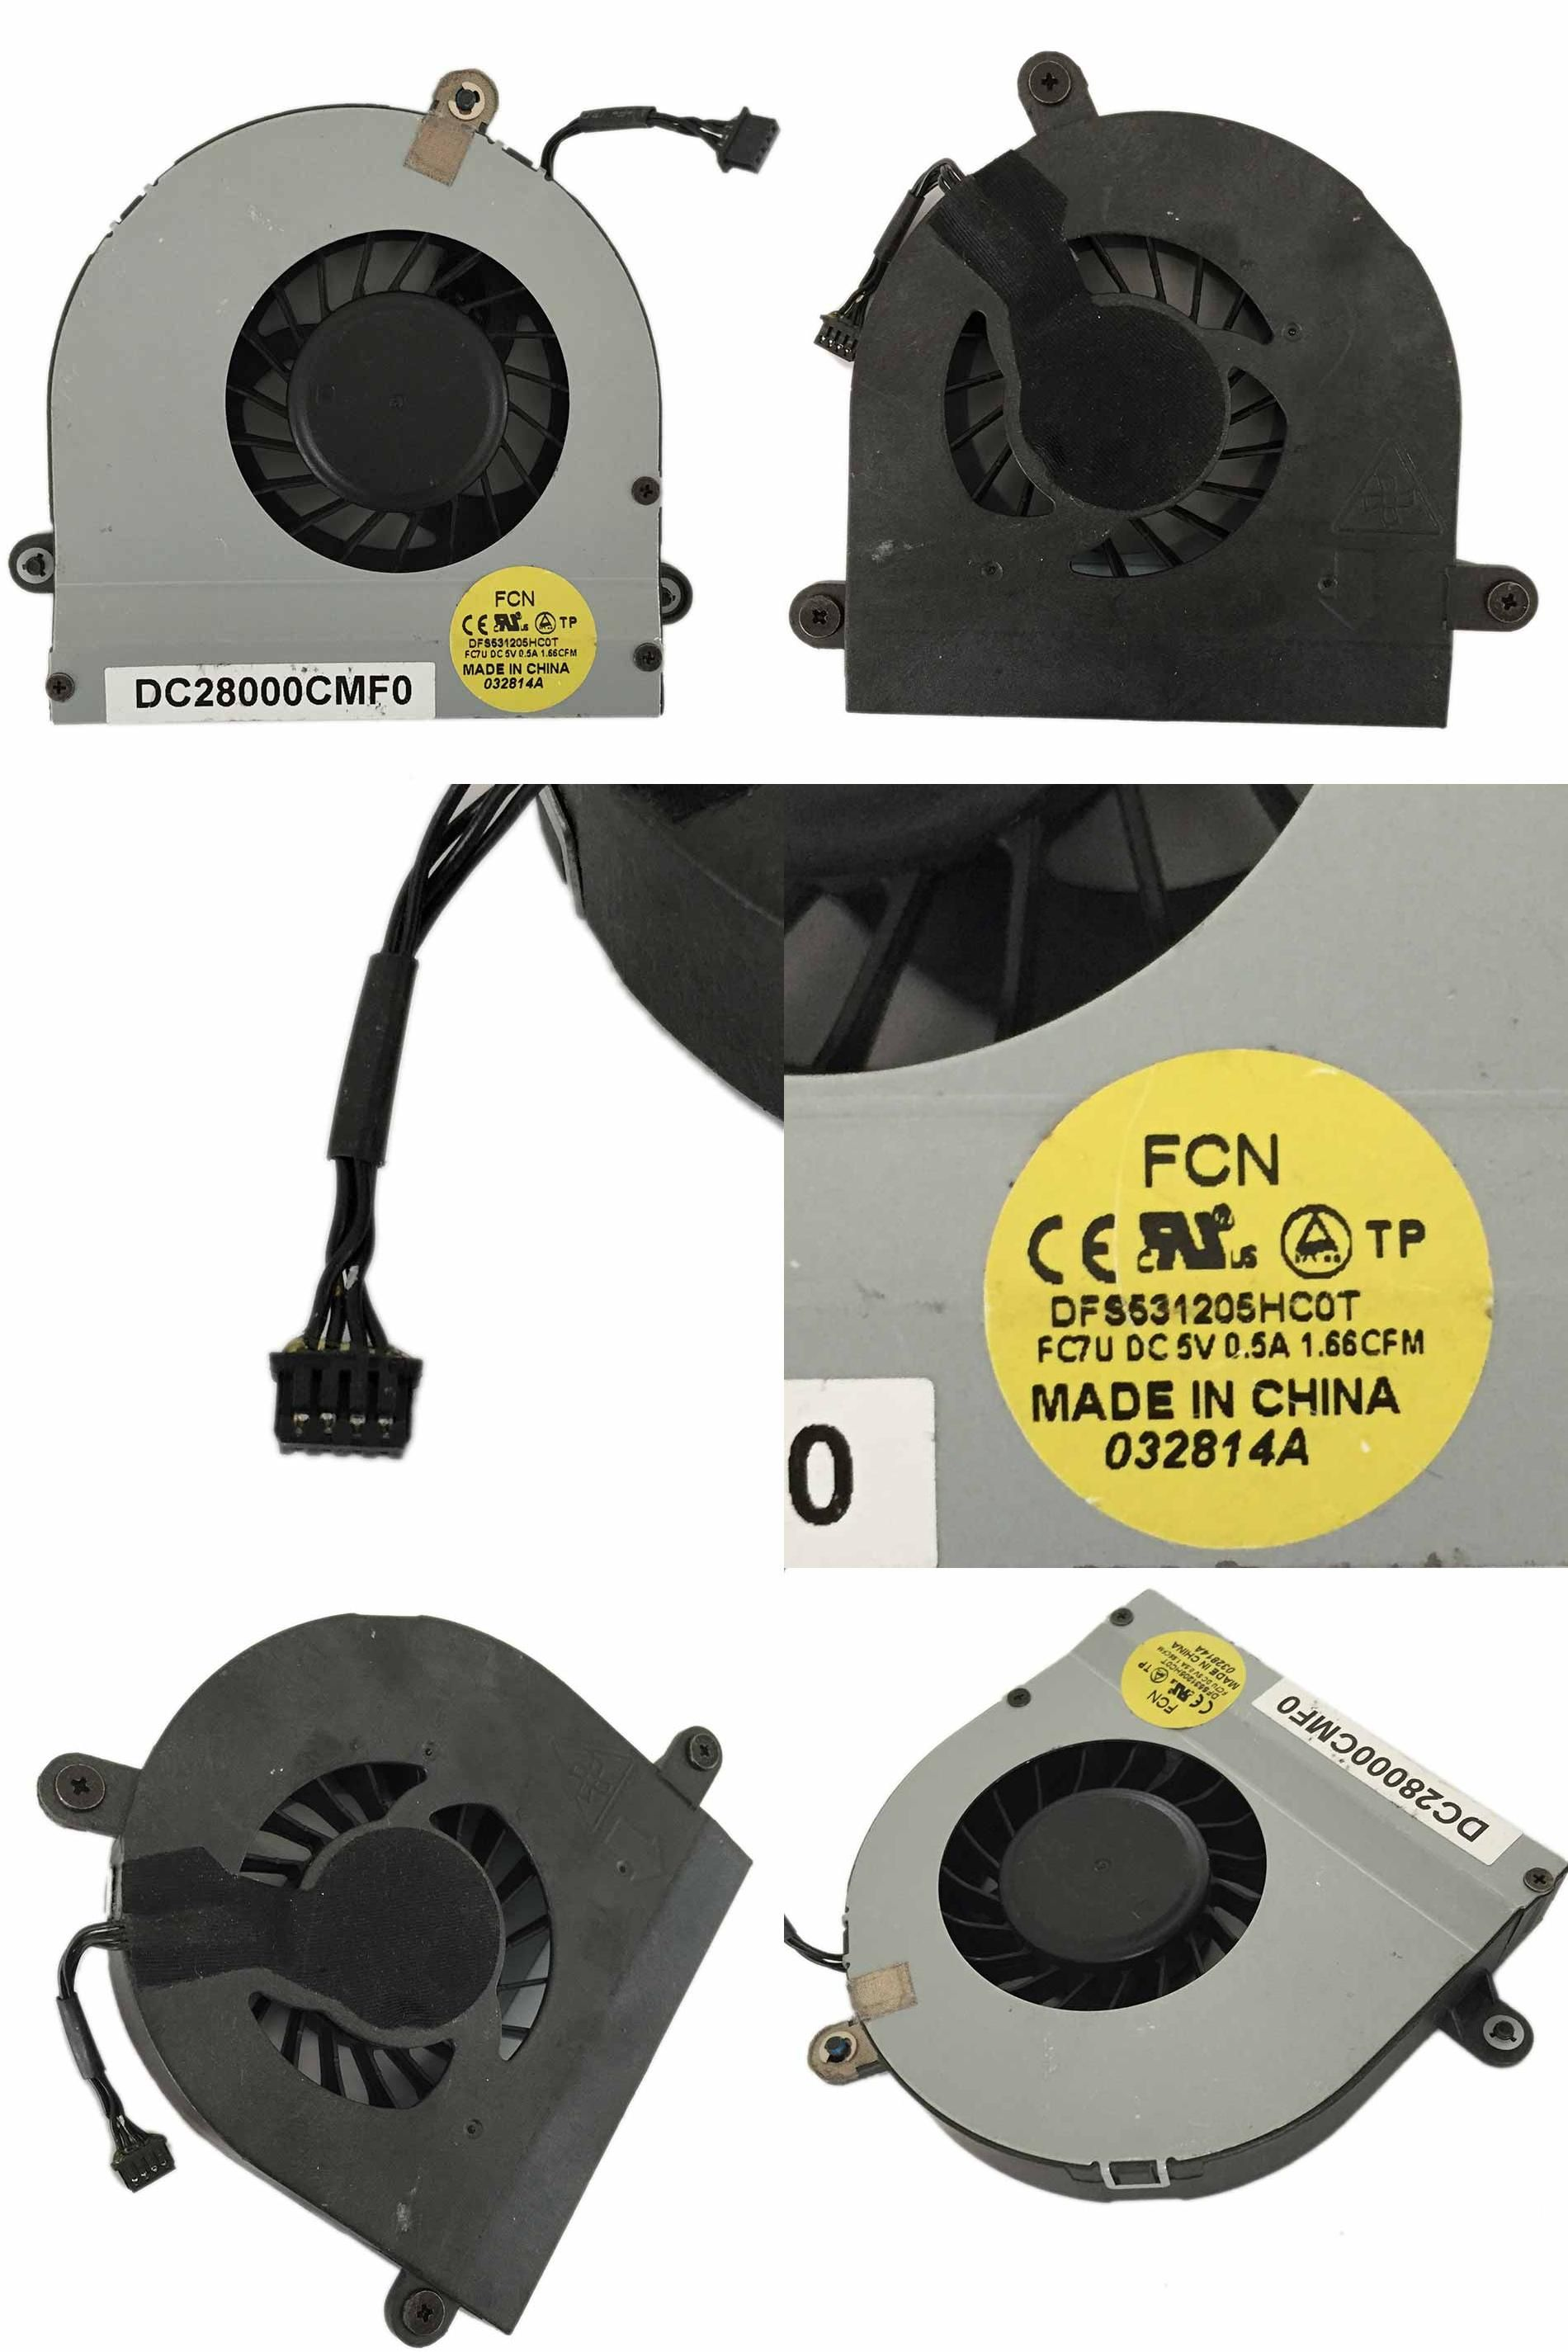 Visit to Buy] CPU Cooling Fan for Dell Alienware M17XR3 M17X R3 R4 on cooler radio, cooler coil, water cooler dispenser diagram, cooler parts diagram, cooler motor, cooler switch diagram, swamp cooler diagram, evaporative cooler diagram, cooler system, cooler compressor, cooler dimensions,